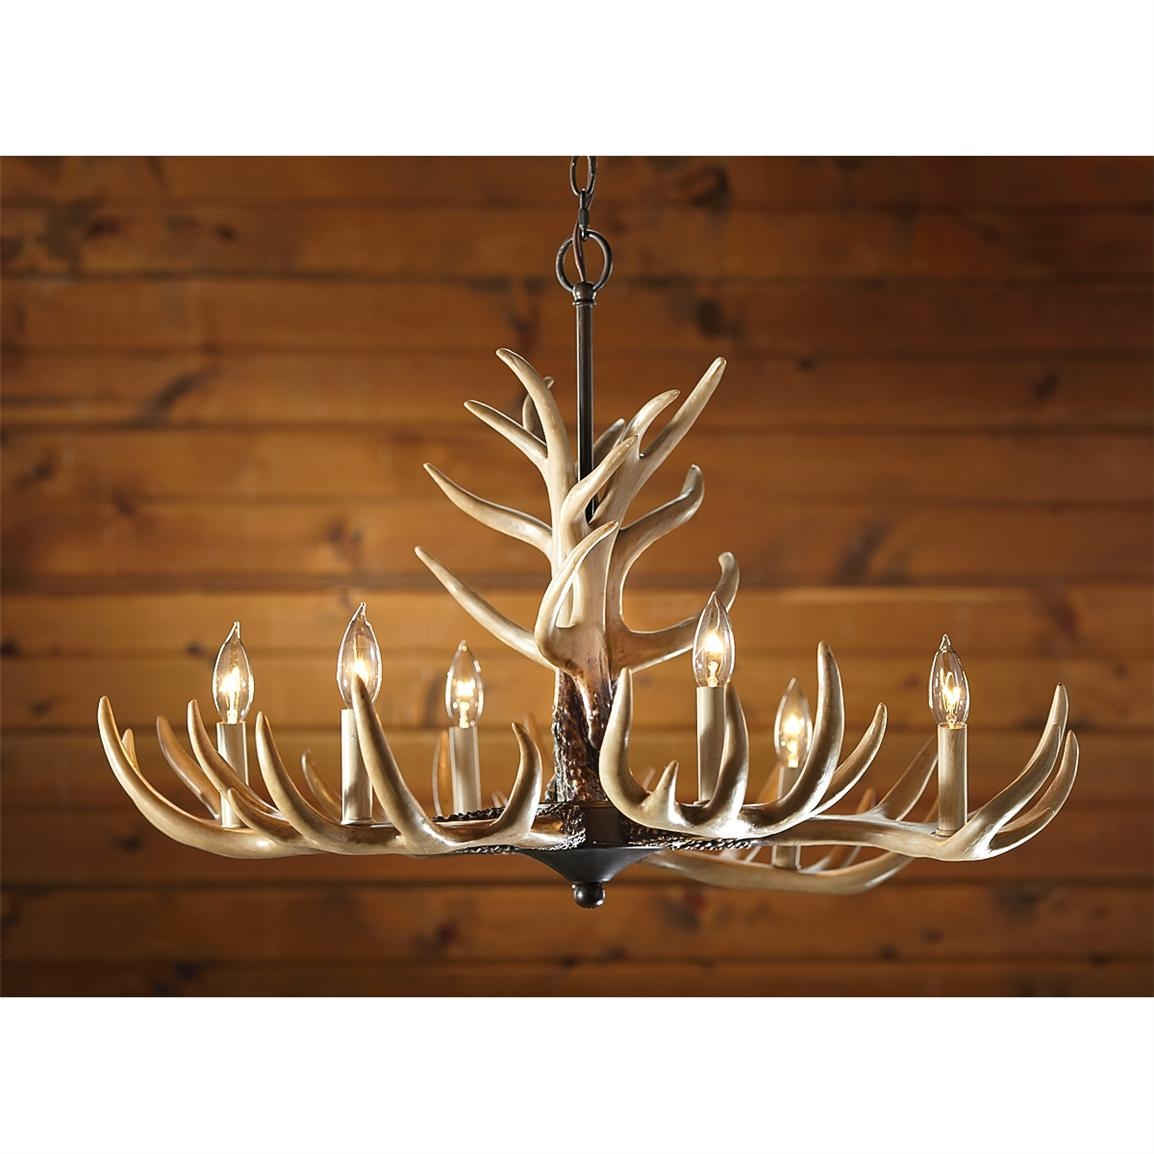 Featured Image of Antler Chandeliers And Lighting